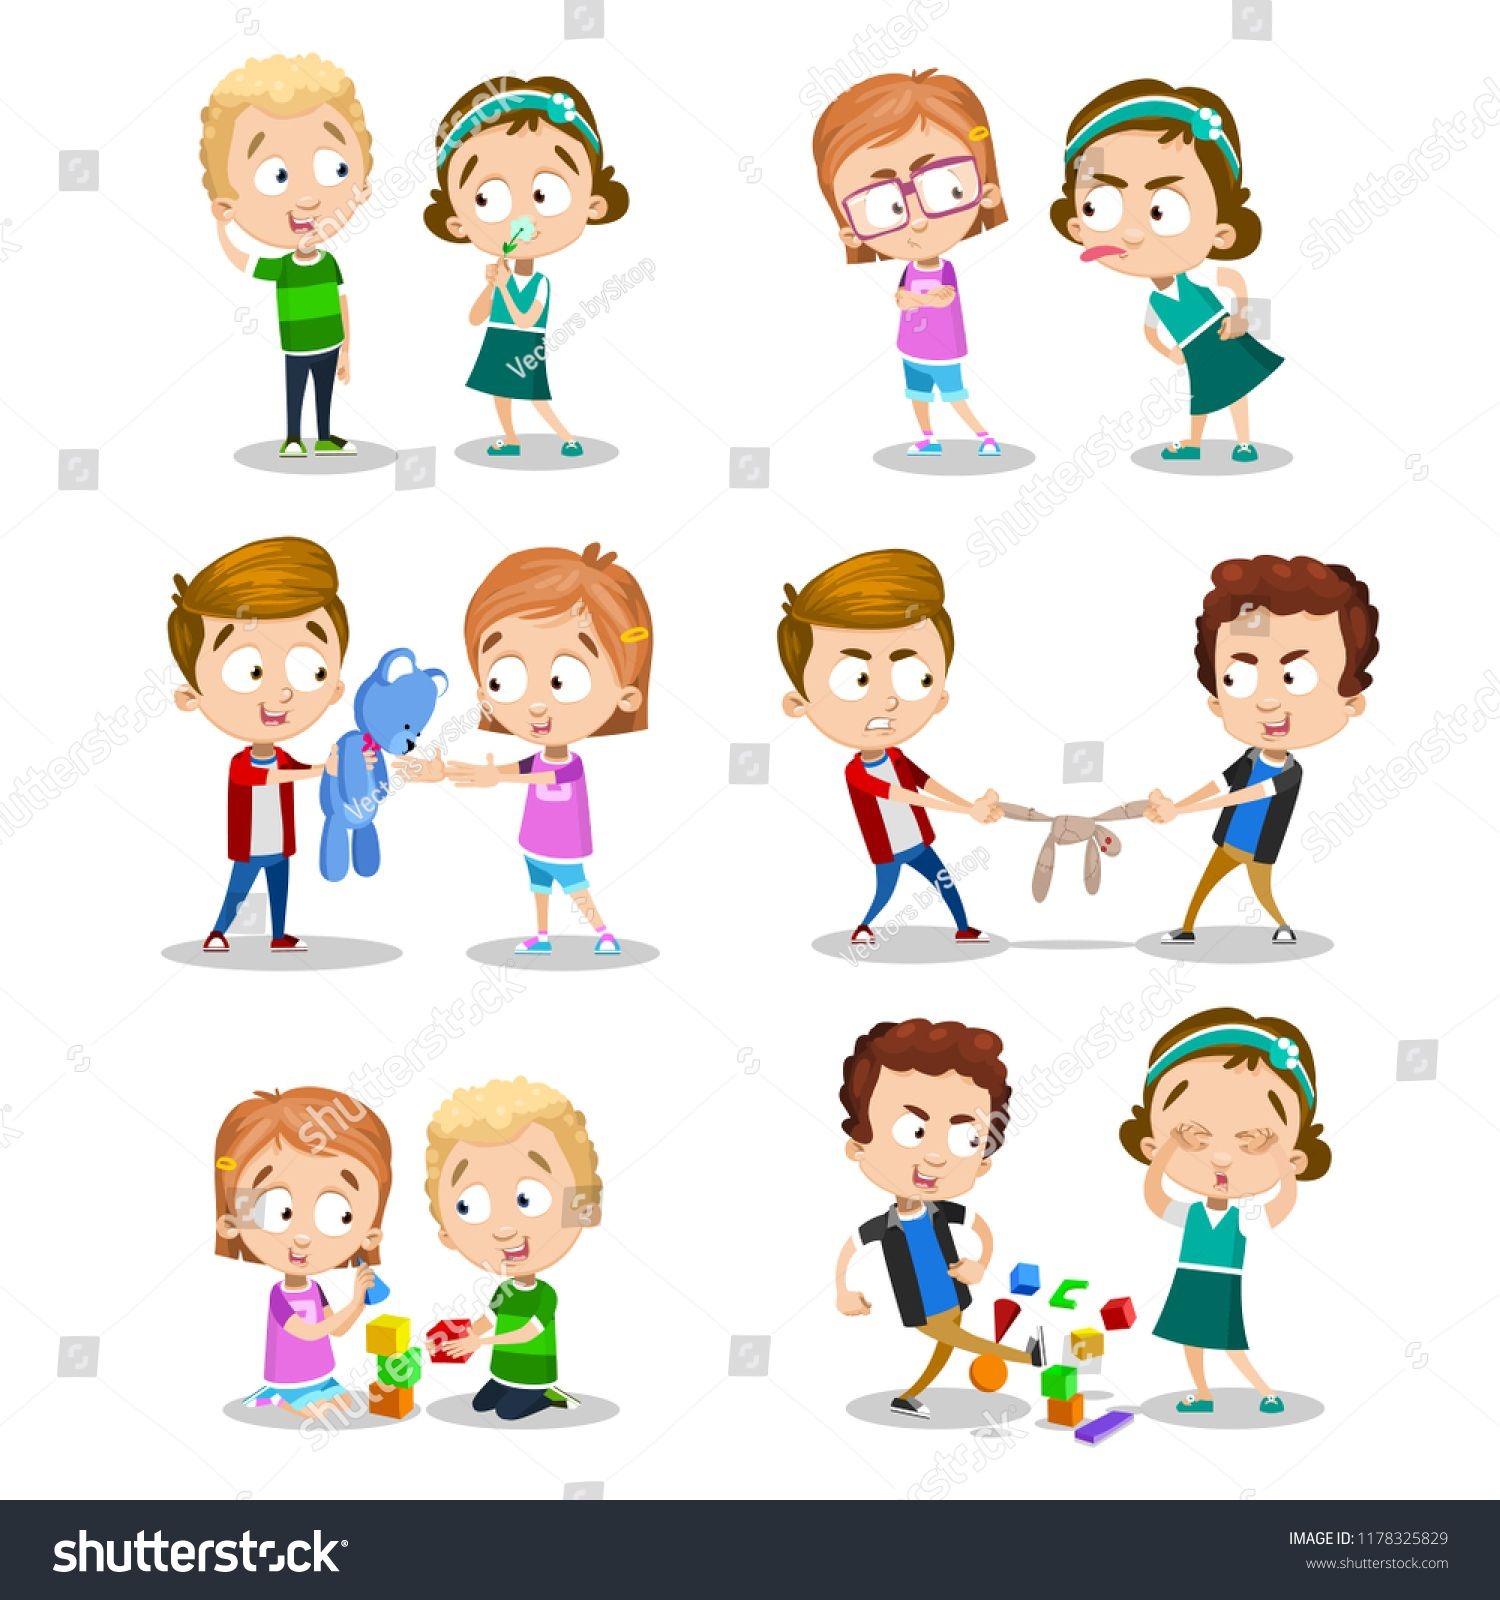 Good and bad behavior of a child. Kids fighting over a toys.